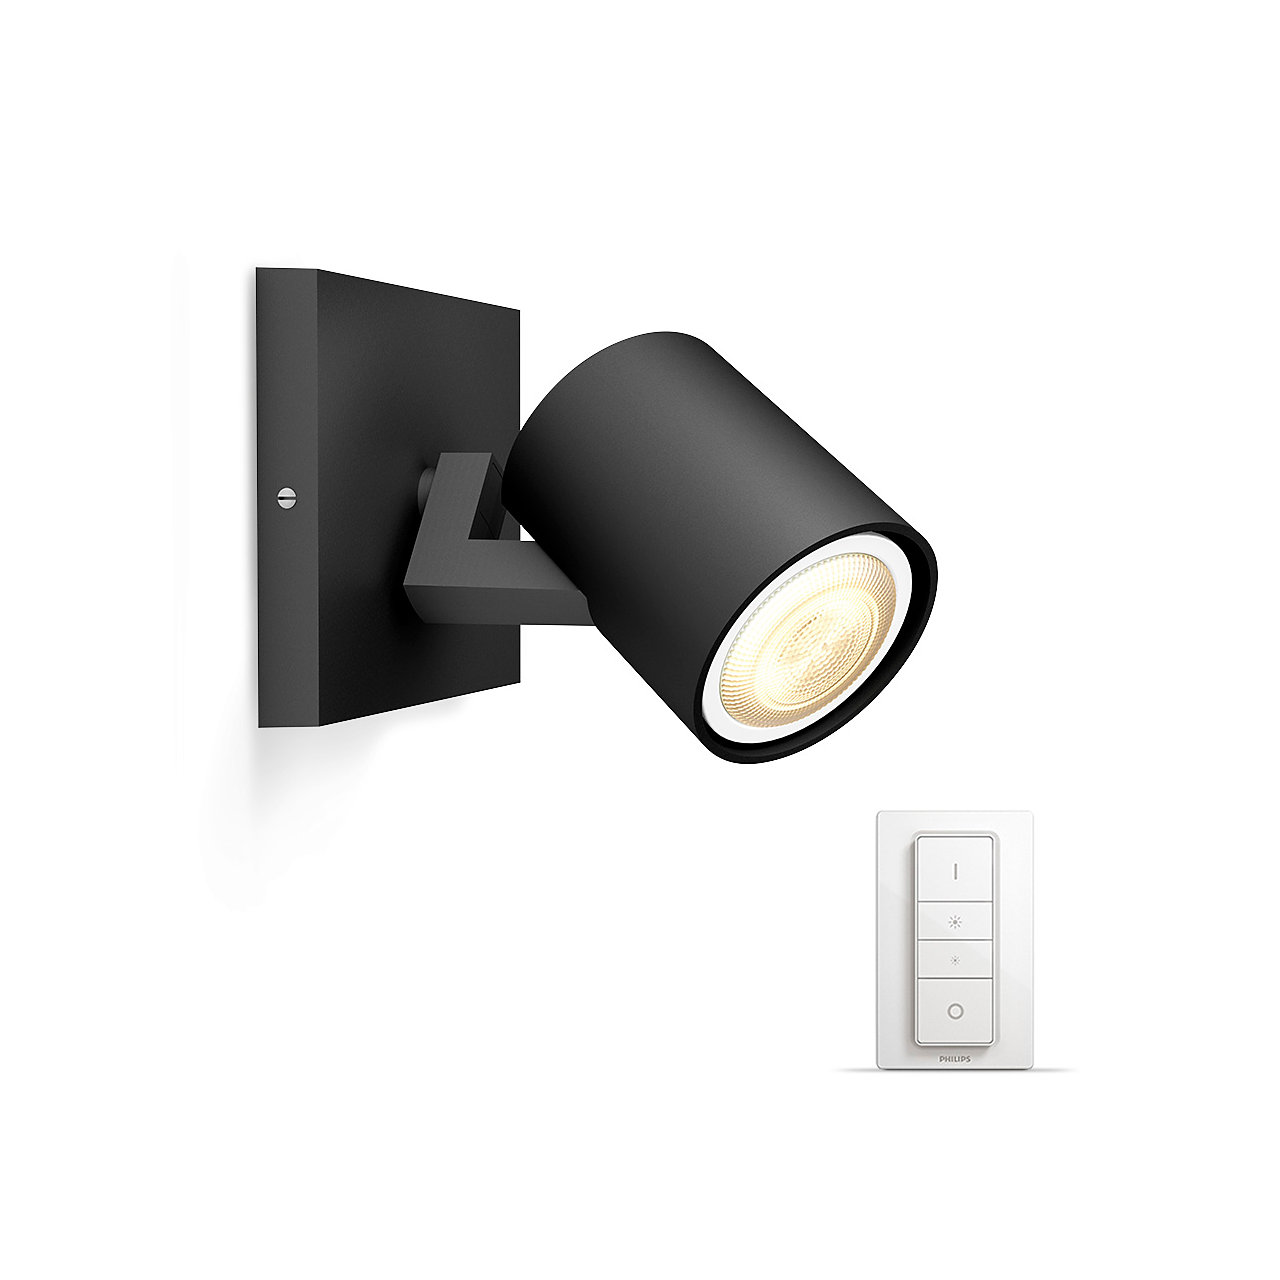 Philips Hue - Runner black 1x5.5W - White Ambiance Bluetooth Dimmer Included